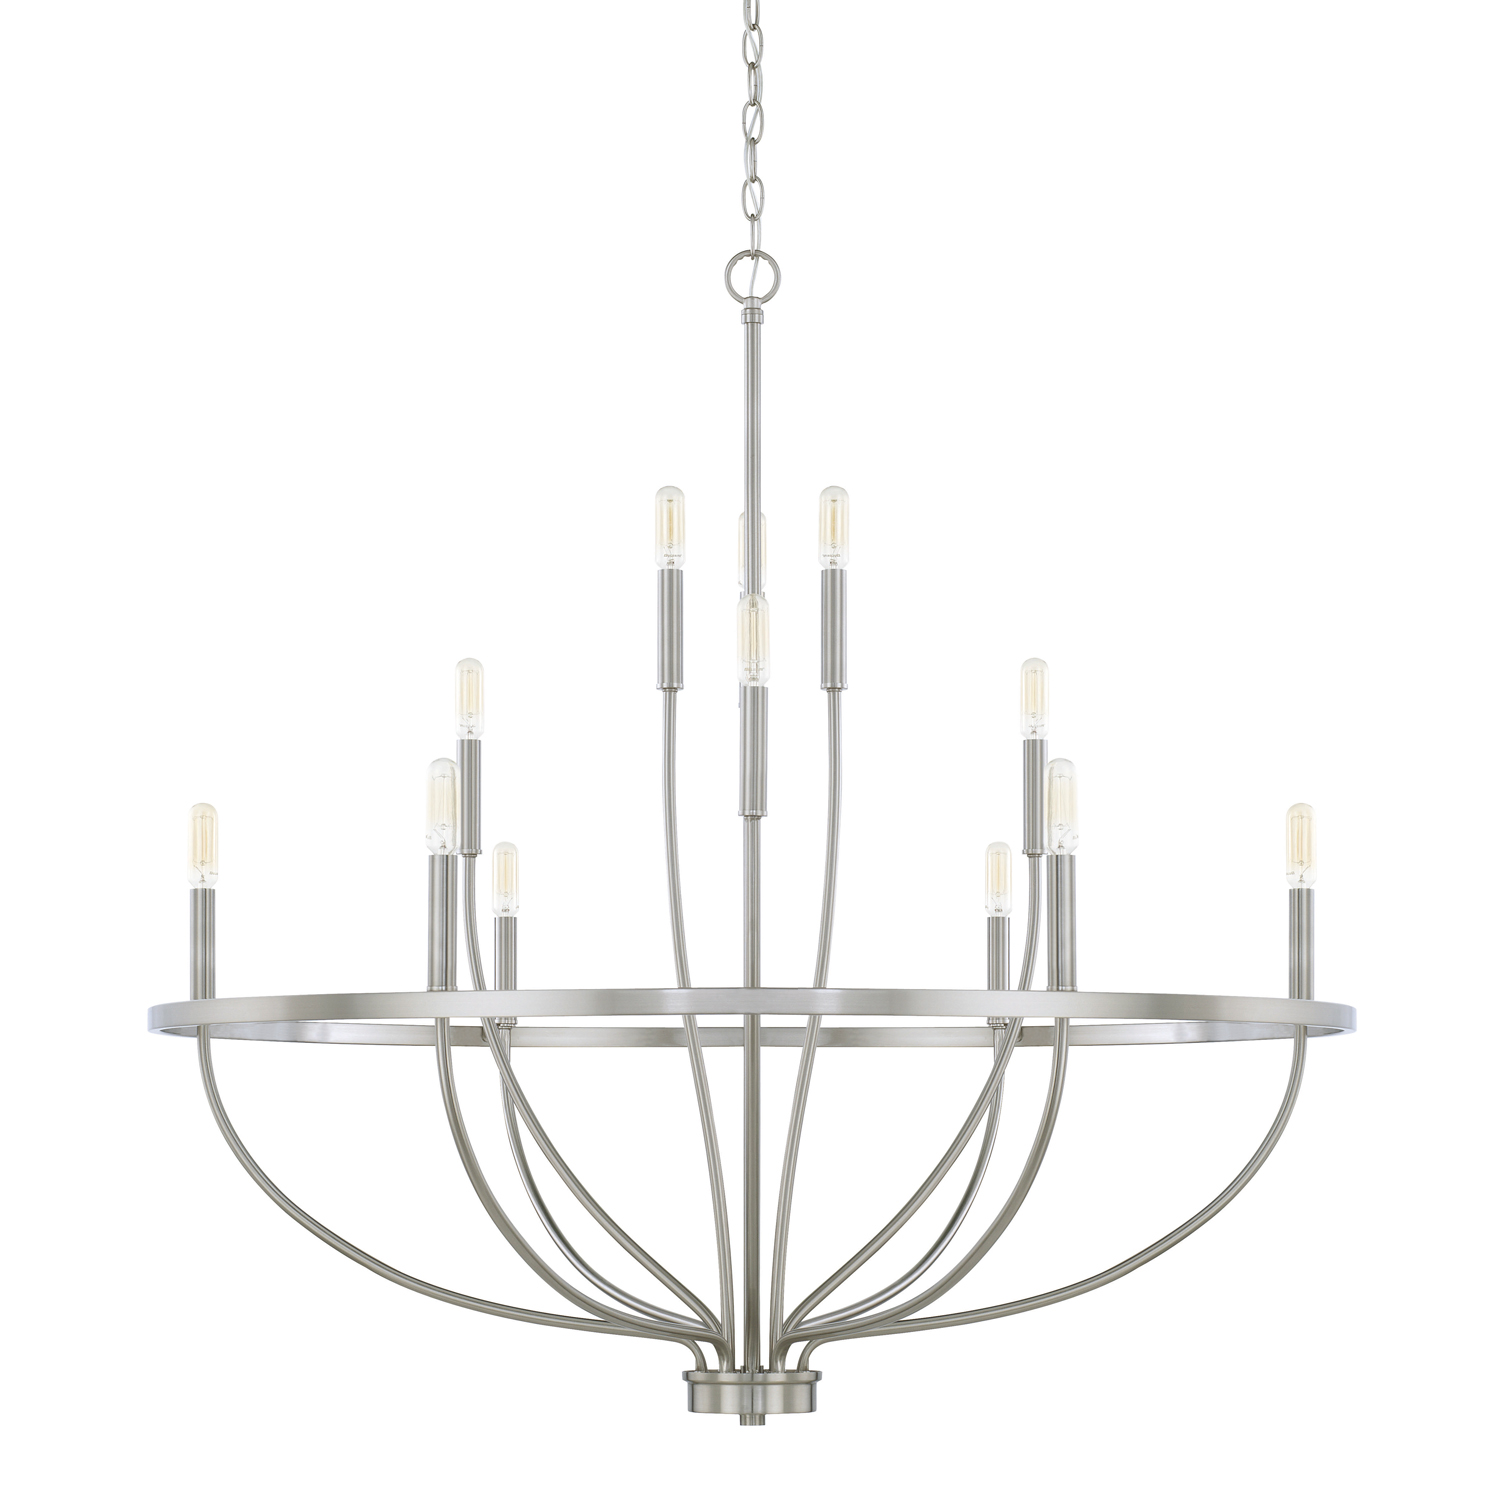 12 Light Chandelier from the Greyson collection by Capital Lighting 428501BN